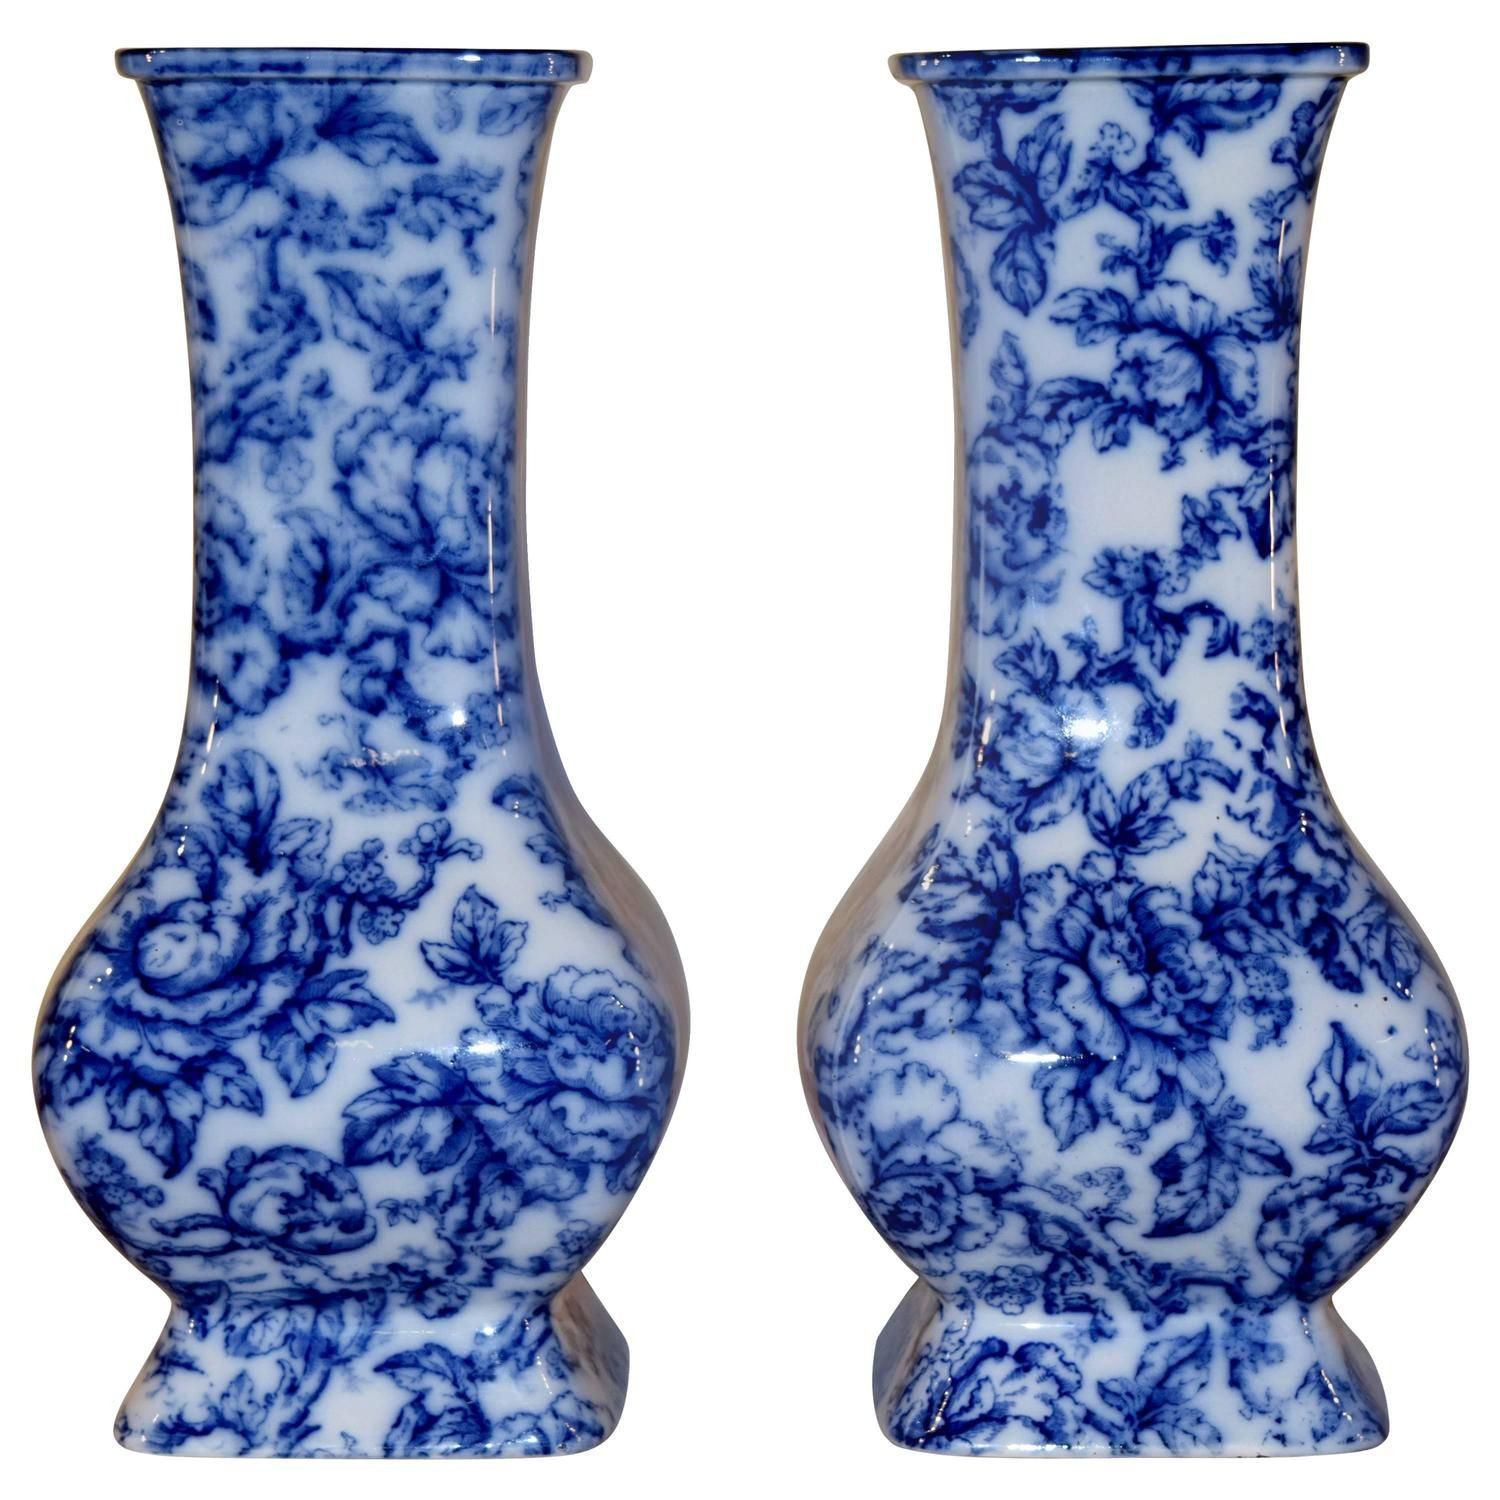 blue glass vases for sale of 19th century pair of cavendish vases my 1stdibs favorites within 19th century pair of cavendish vases